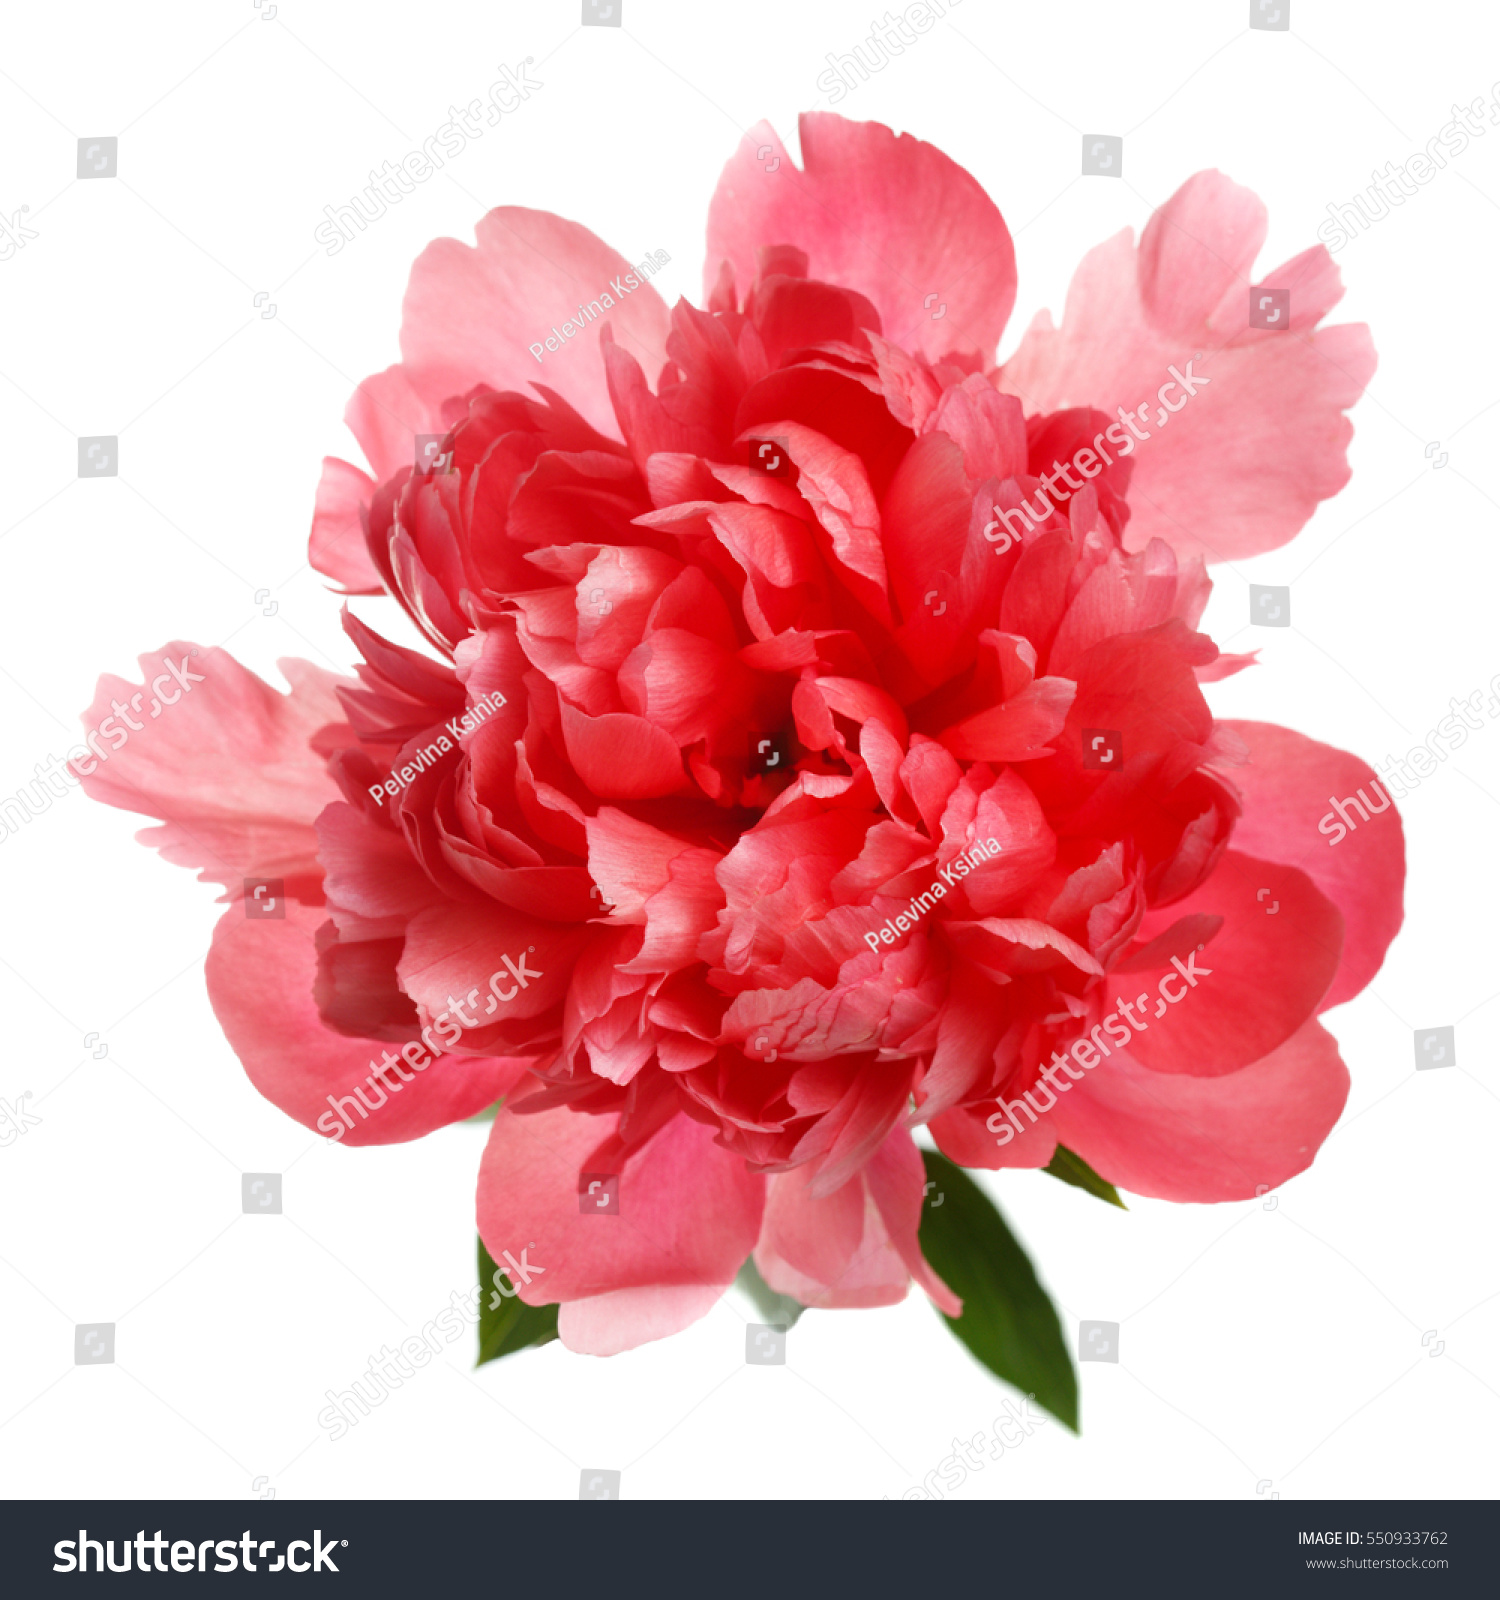 Flower Rare Salmoncolored Peony Isolated On Stock Photo (Royalty ...